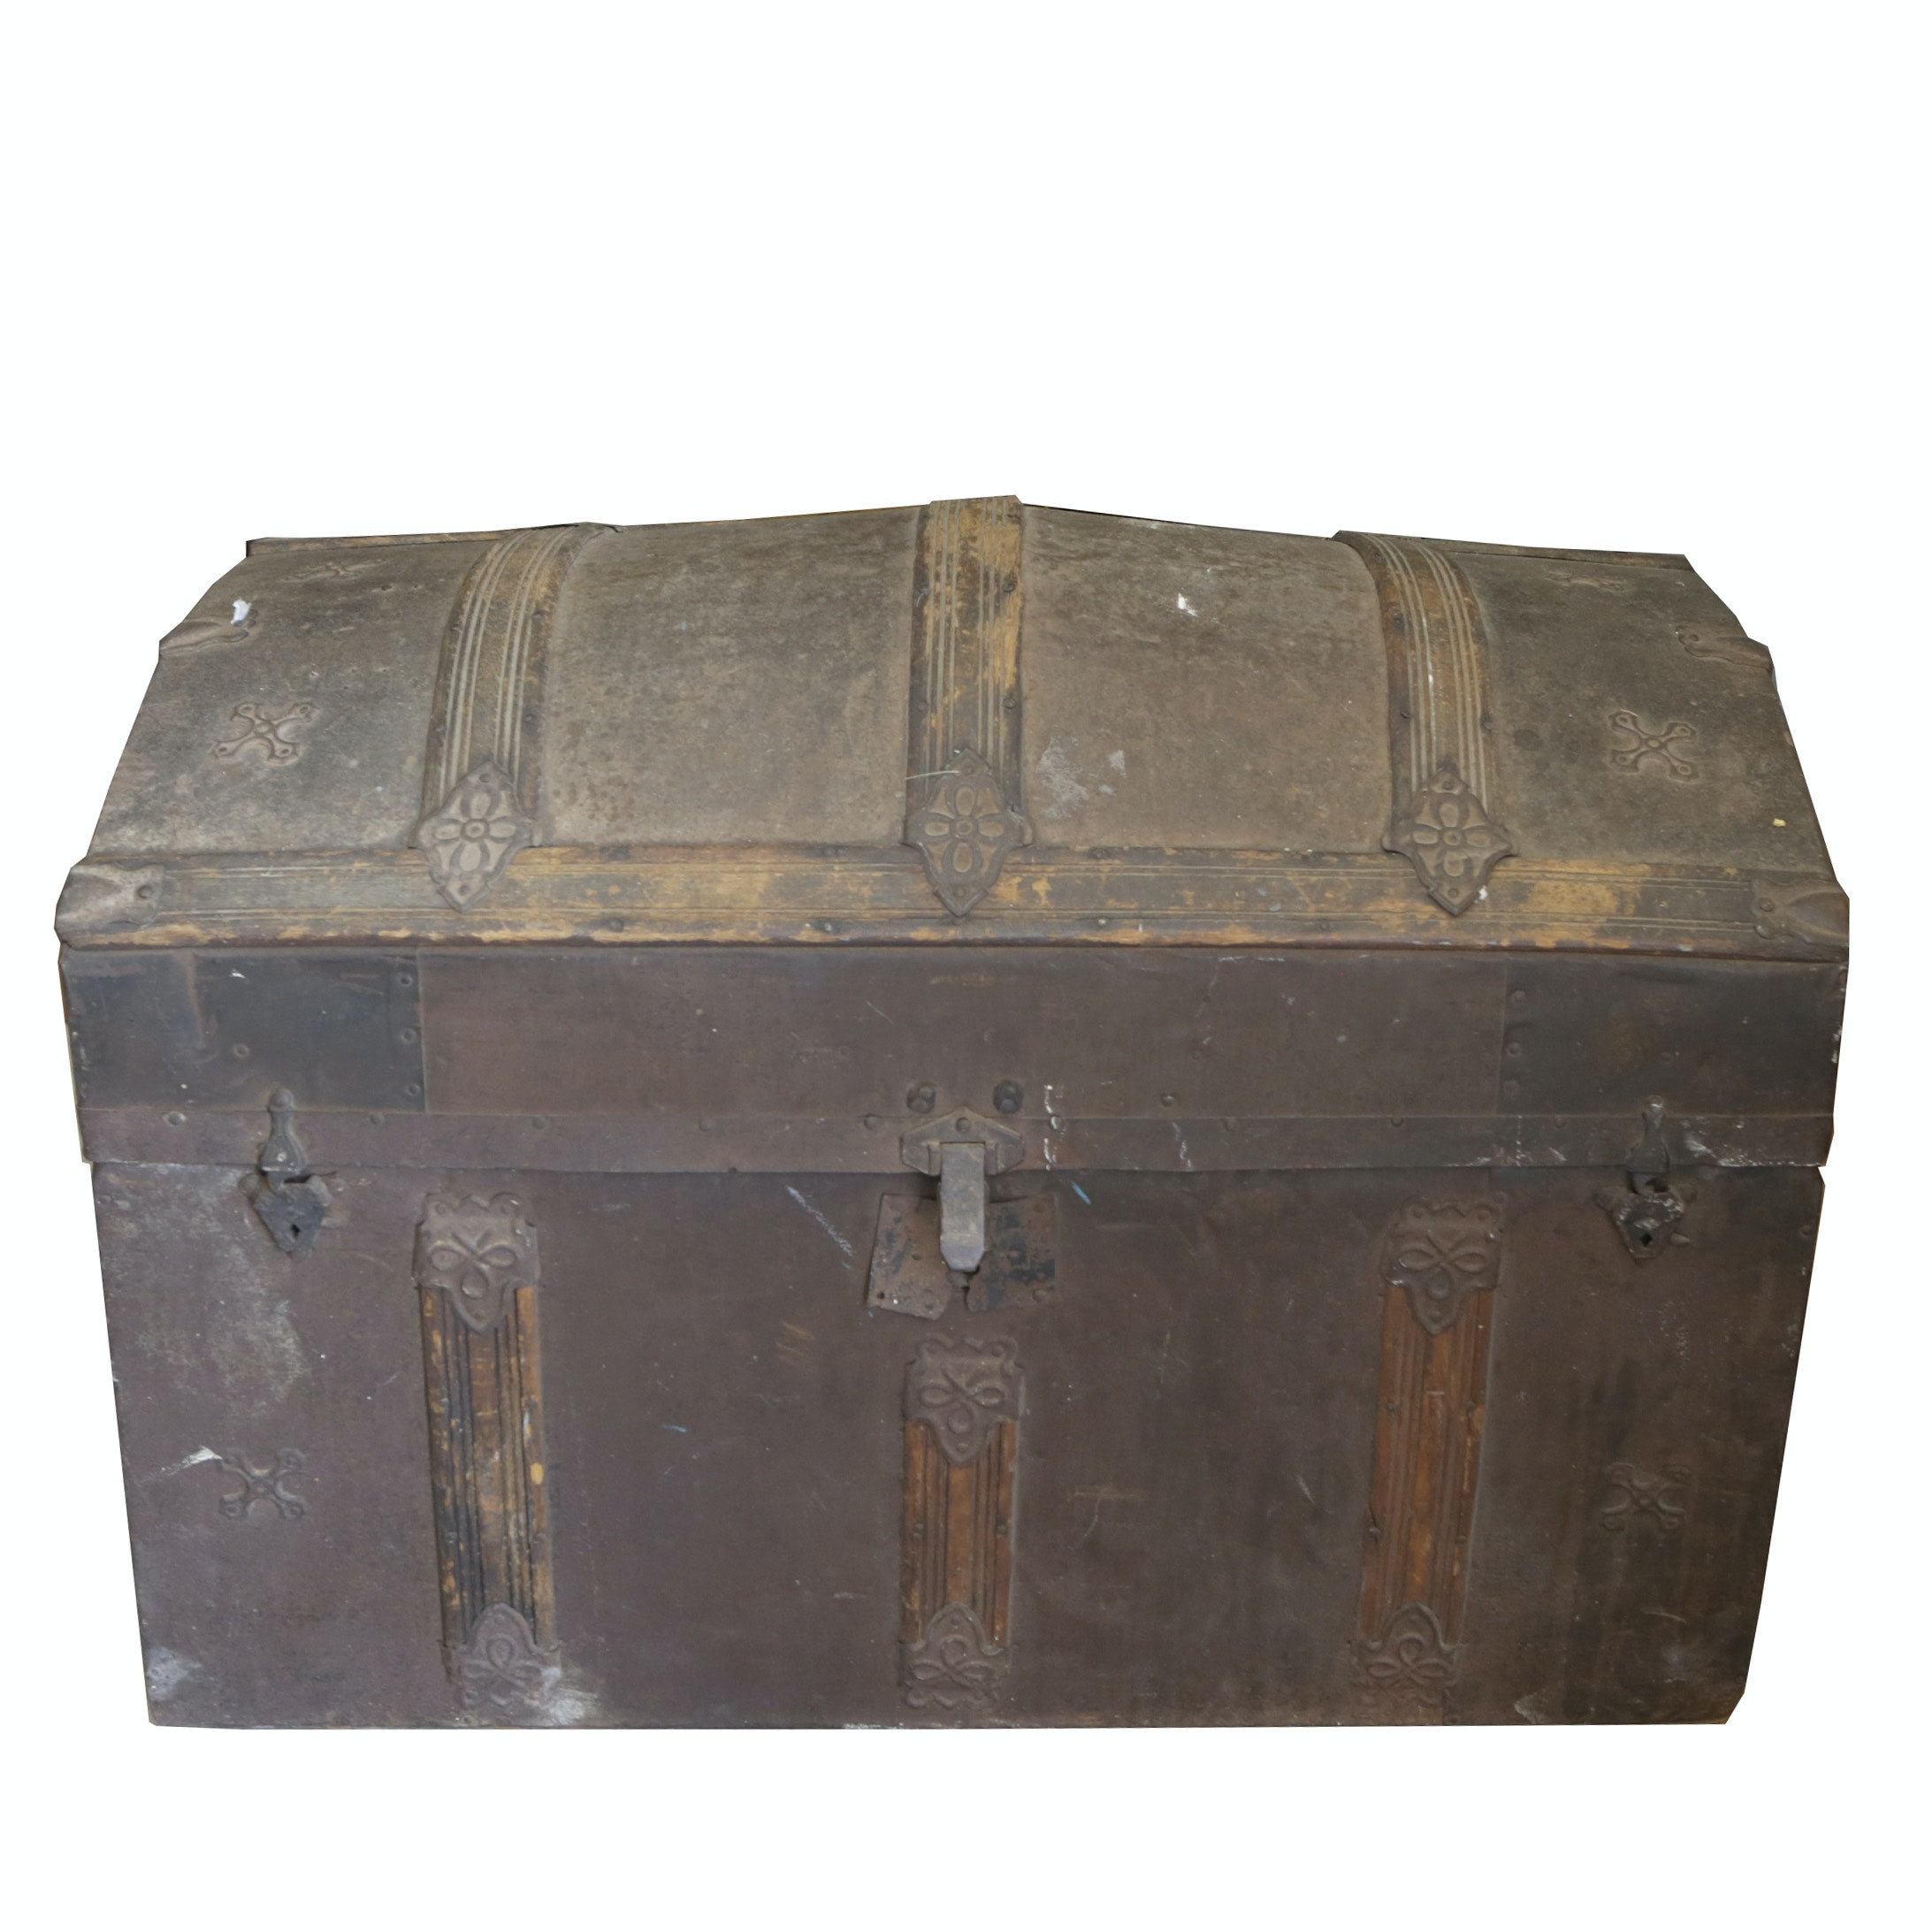 Antique Dome-Top Trunk